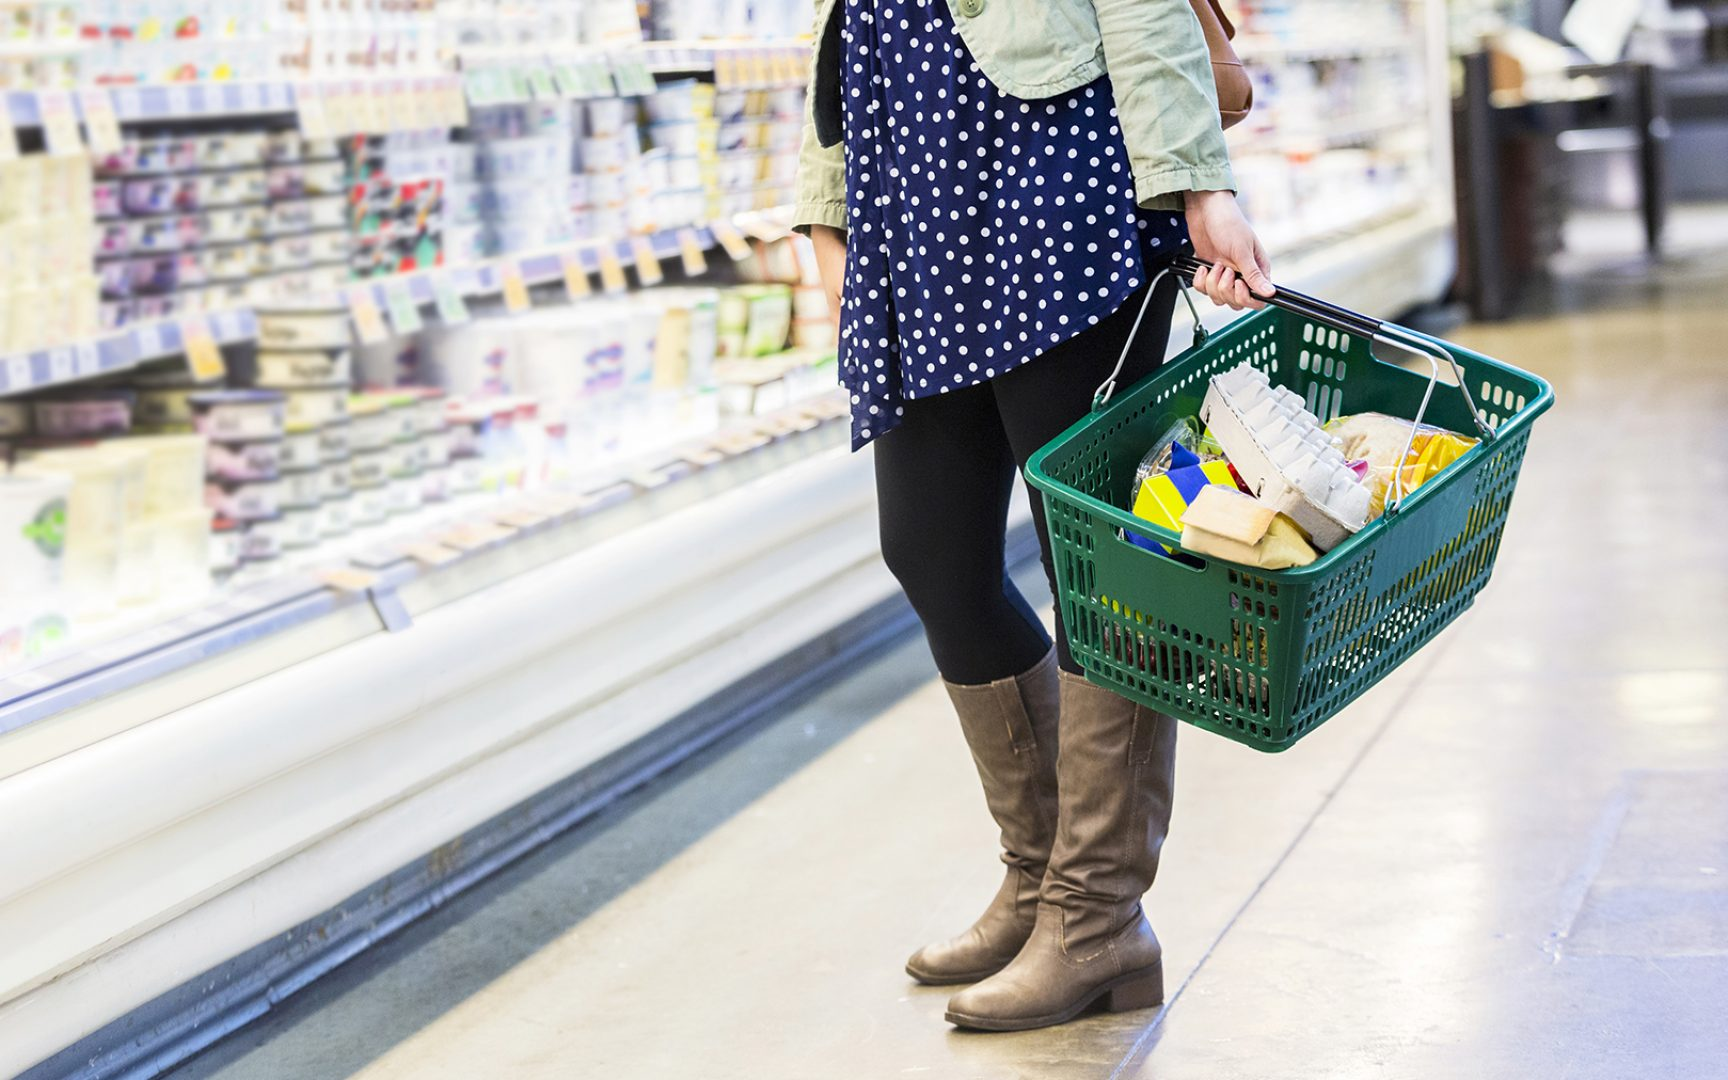 Lower half of a woman grocery shopping, she is holding a green shopping basket.